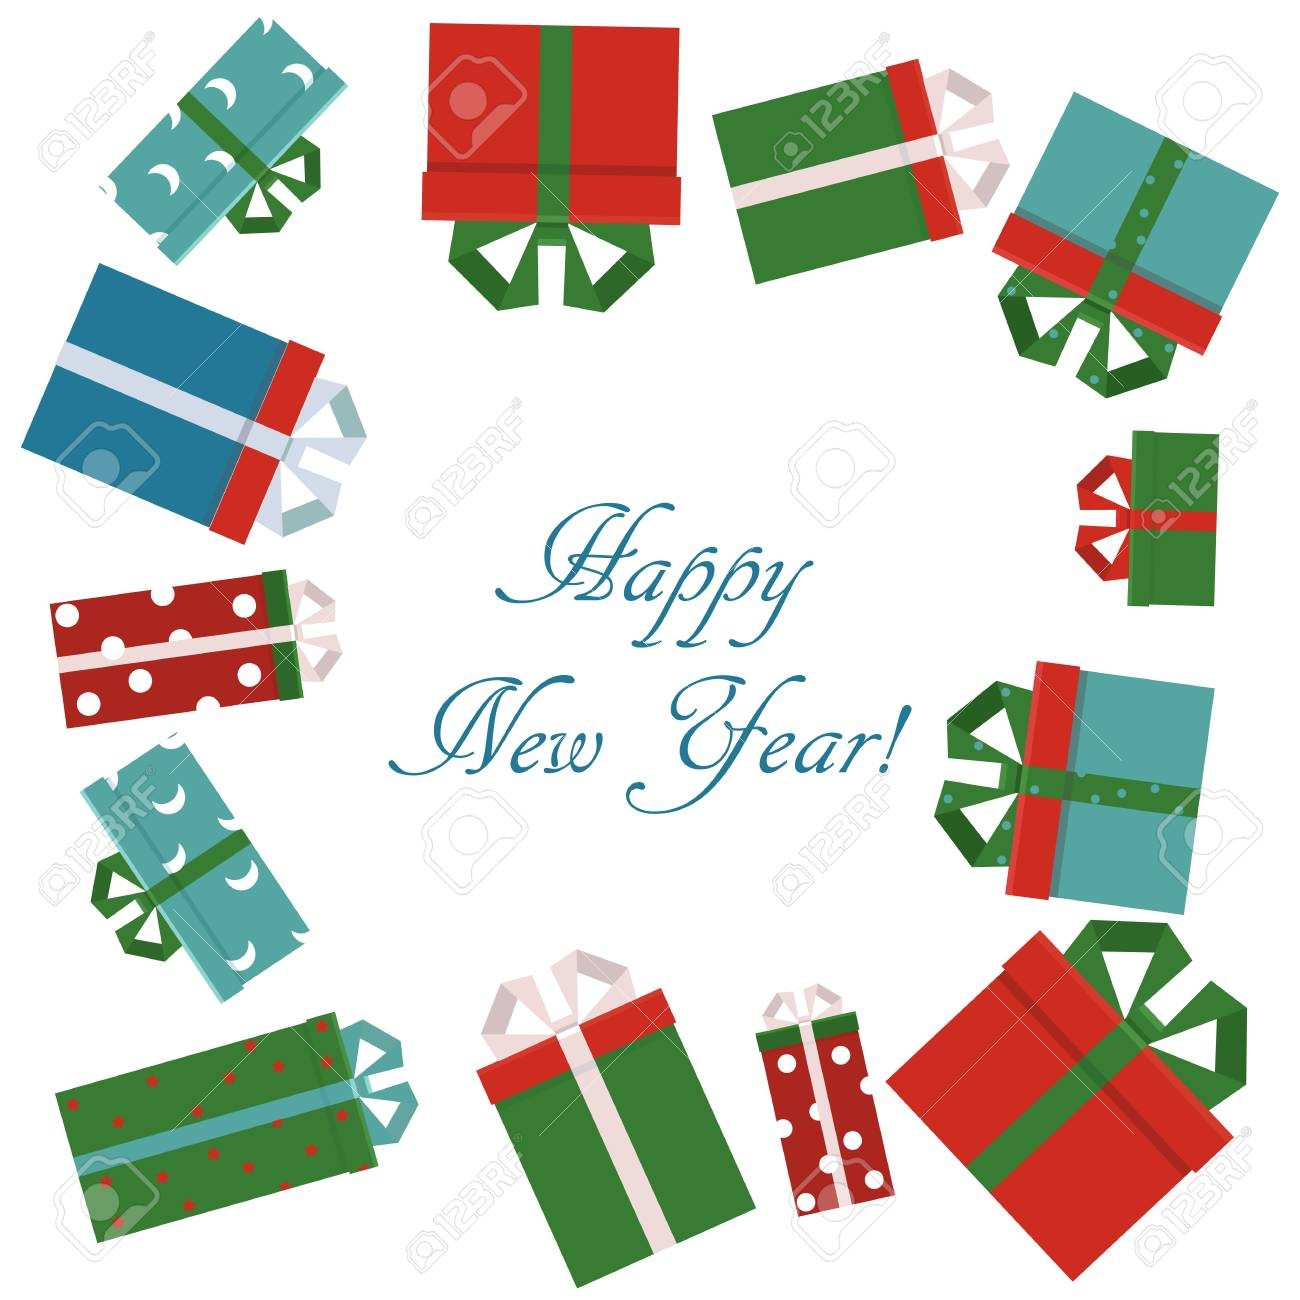 Merry Christmas And Happy New Year Party Invitation Card With